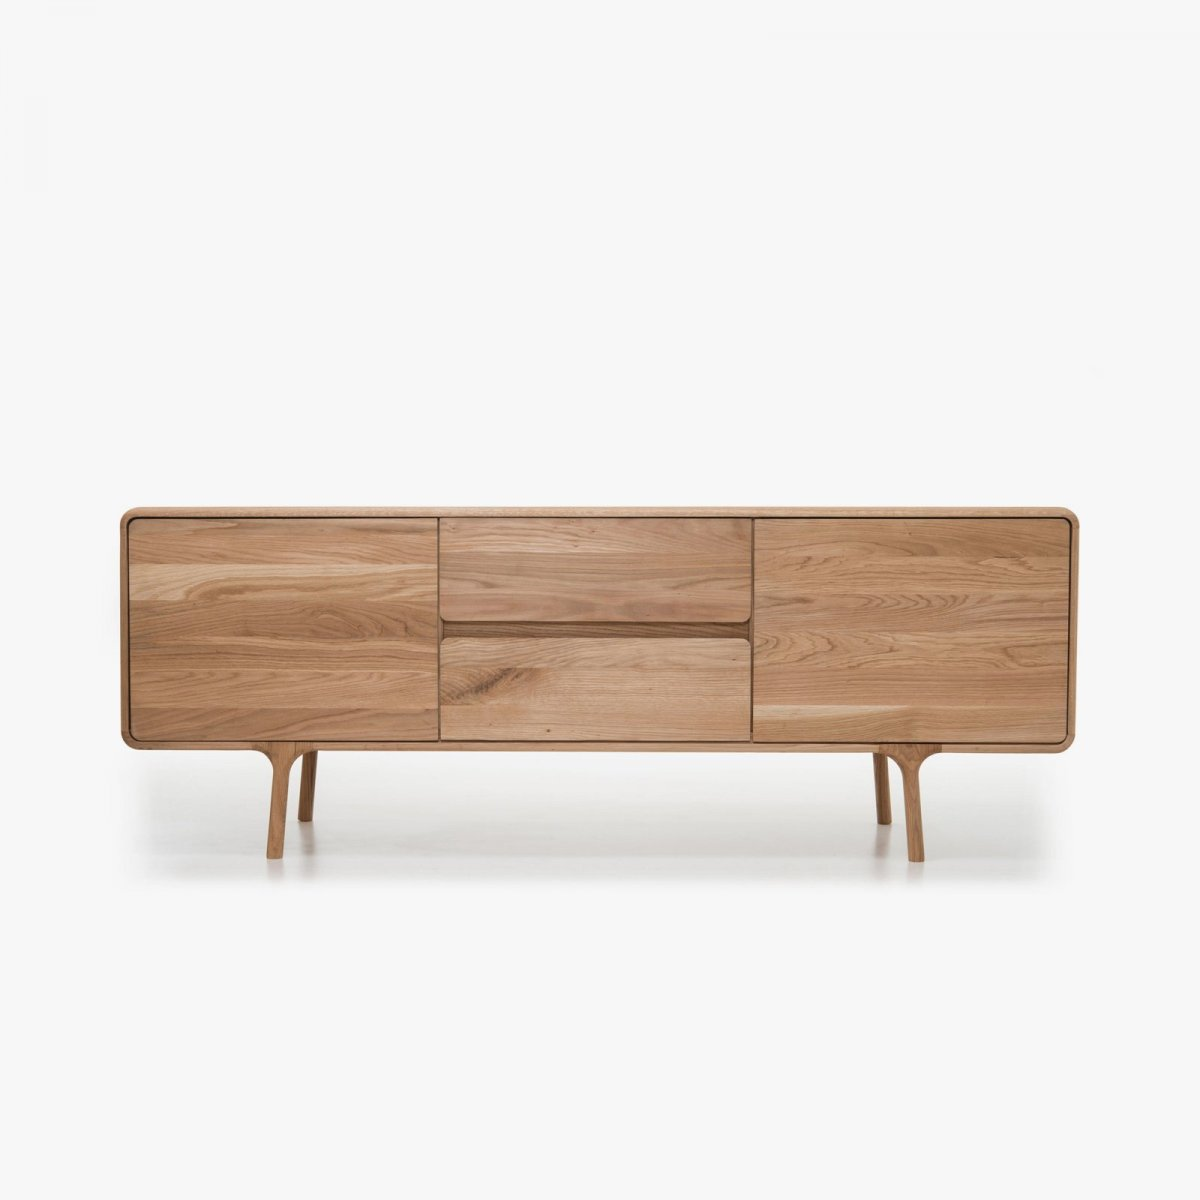 Fawn Sideboard, front view.